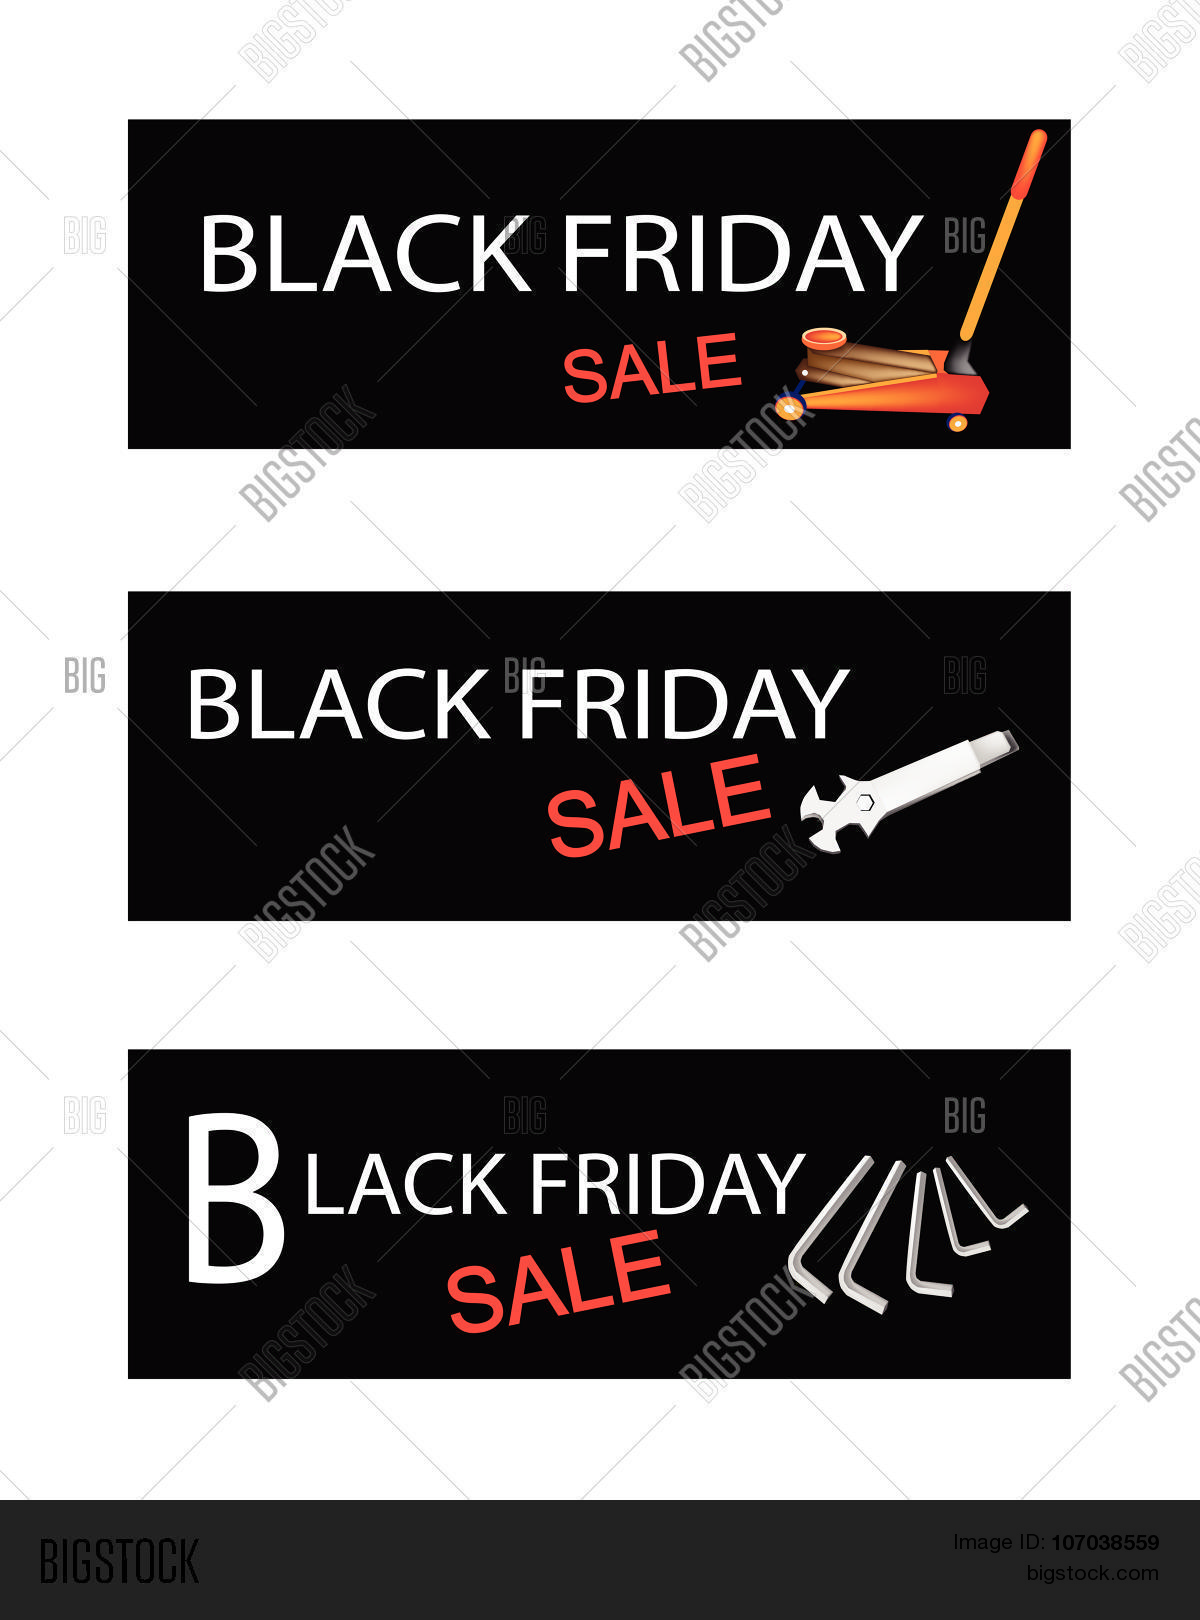 hight resolution of illustration of car jack and repair tools kits on black friday shopping labels for start christmas shopping season